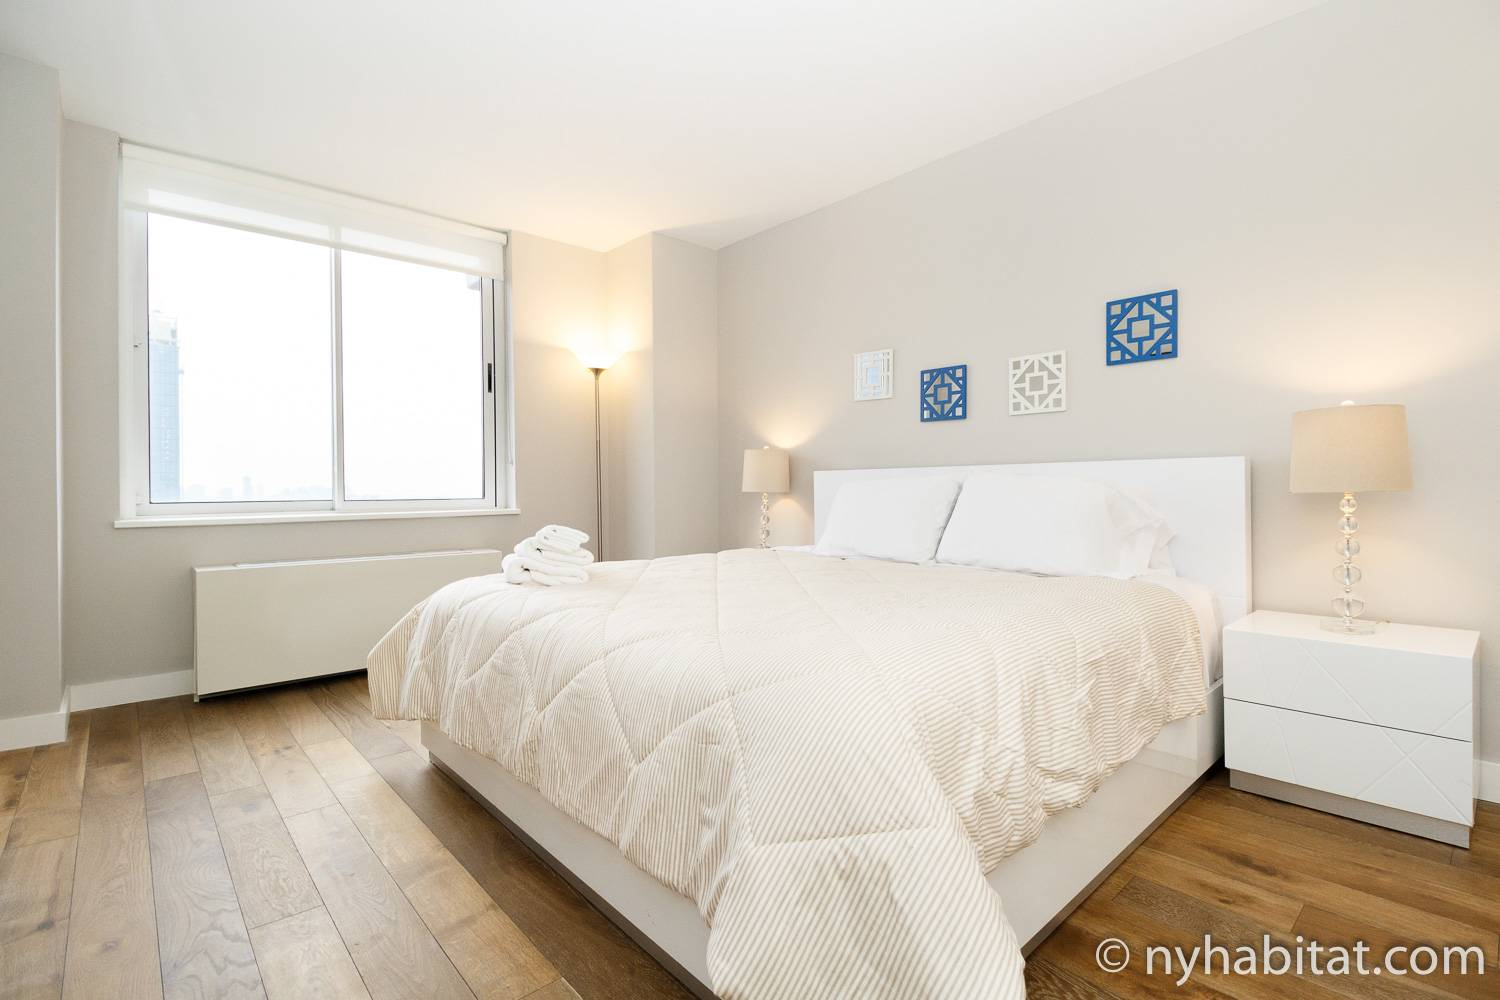 Image of one of the bedrooms in furnished rental NY-17394 with a full sized bed covered in white duvet and blue decorations on the wall.